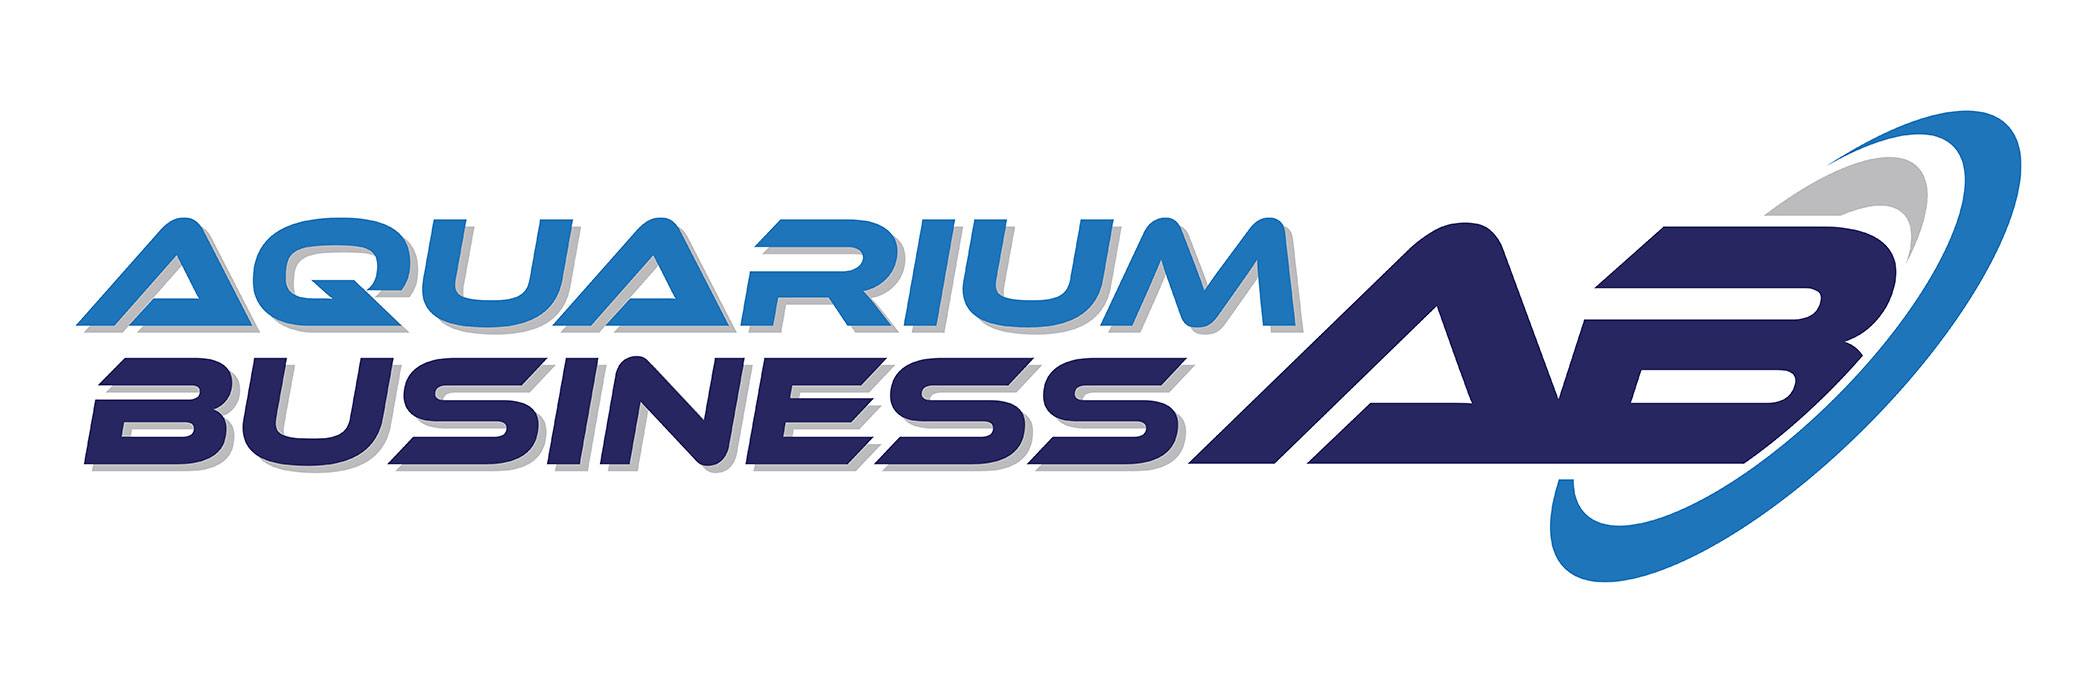 aquariumbusiness-logo-2100